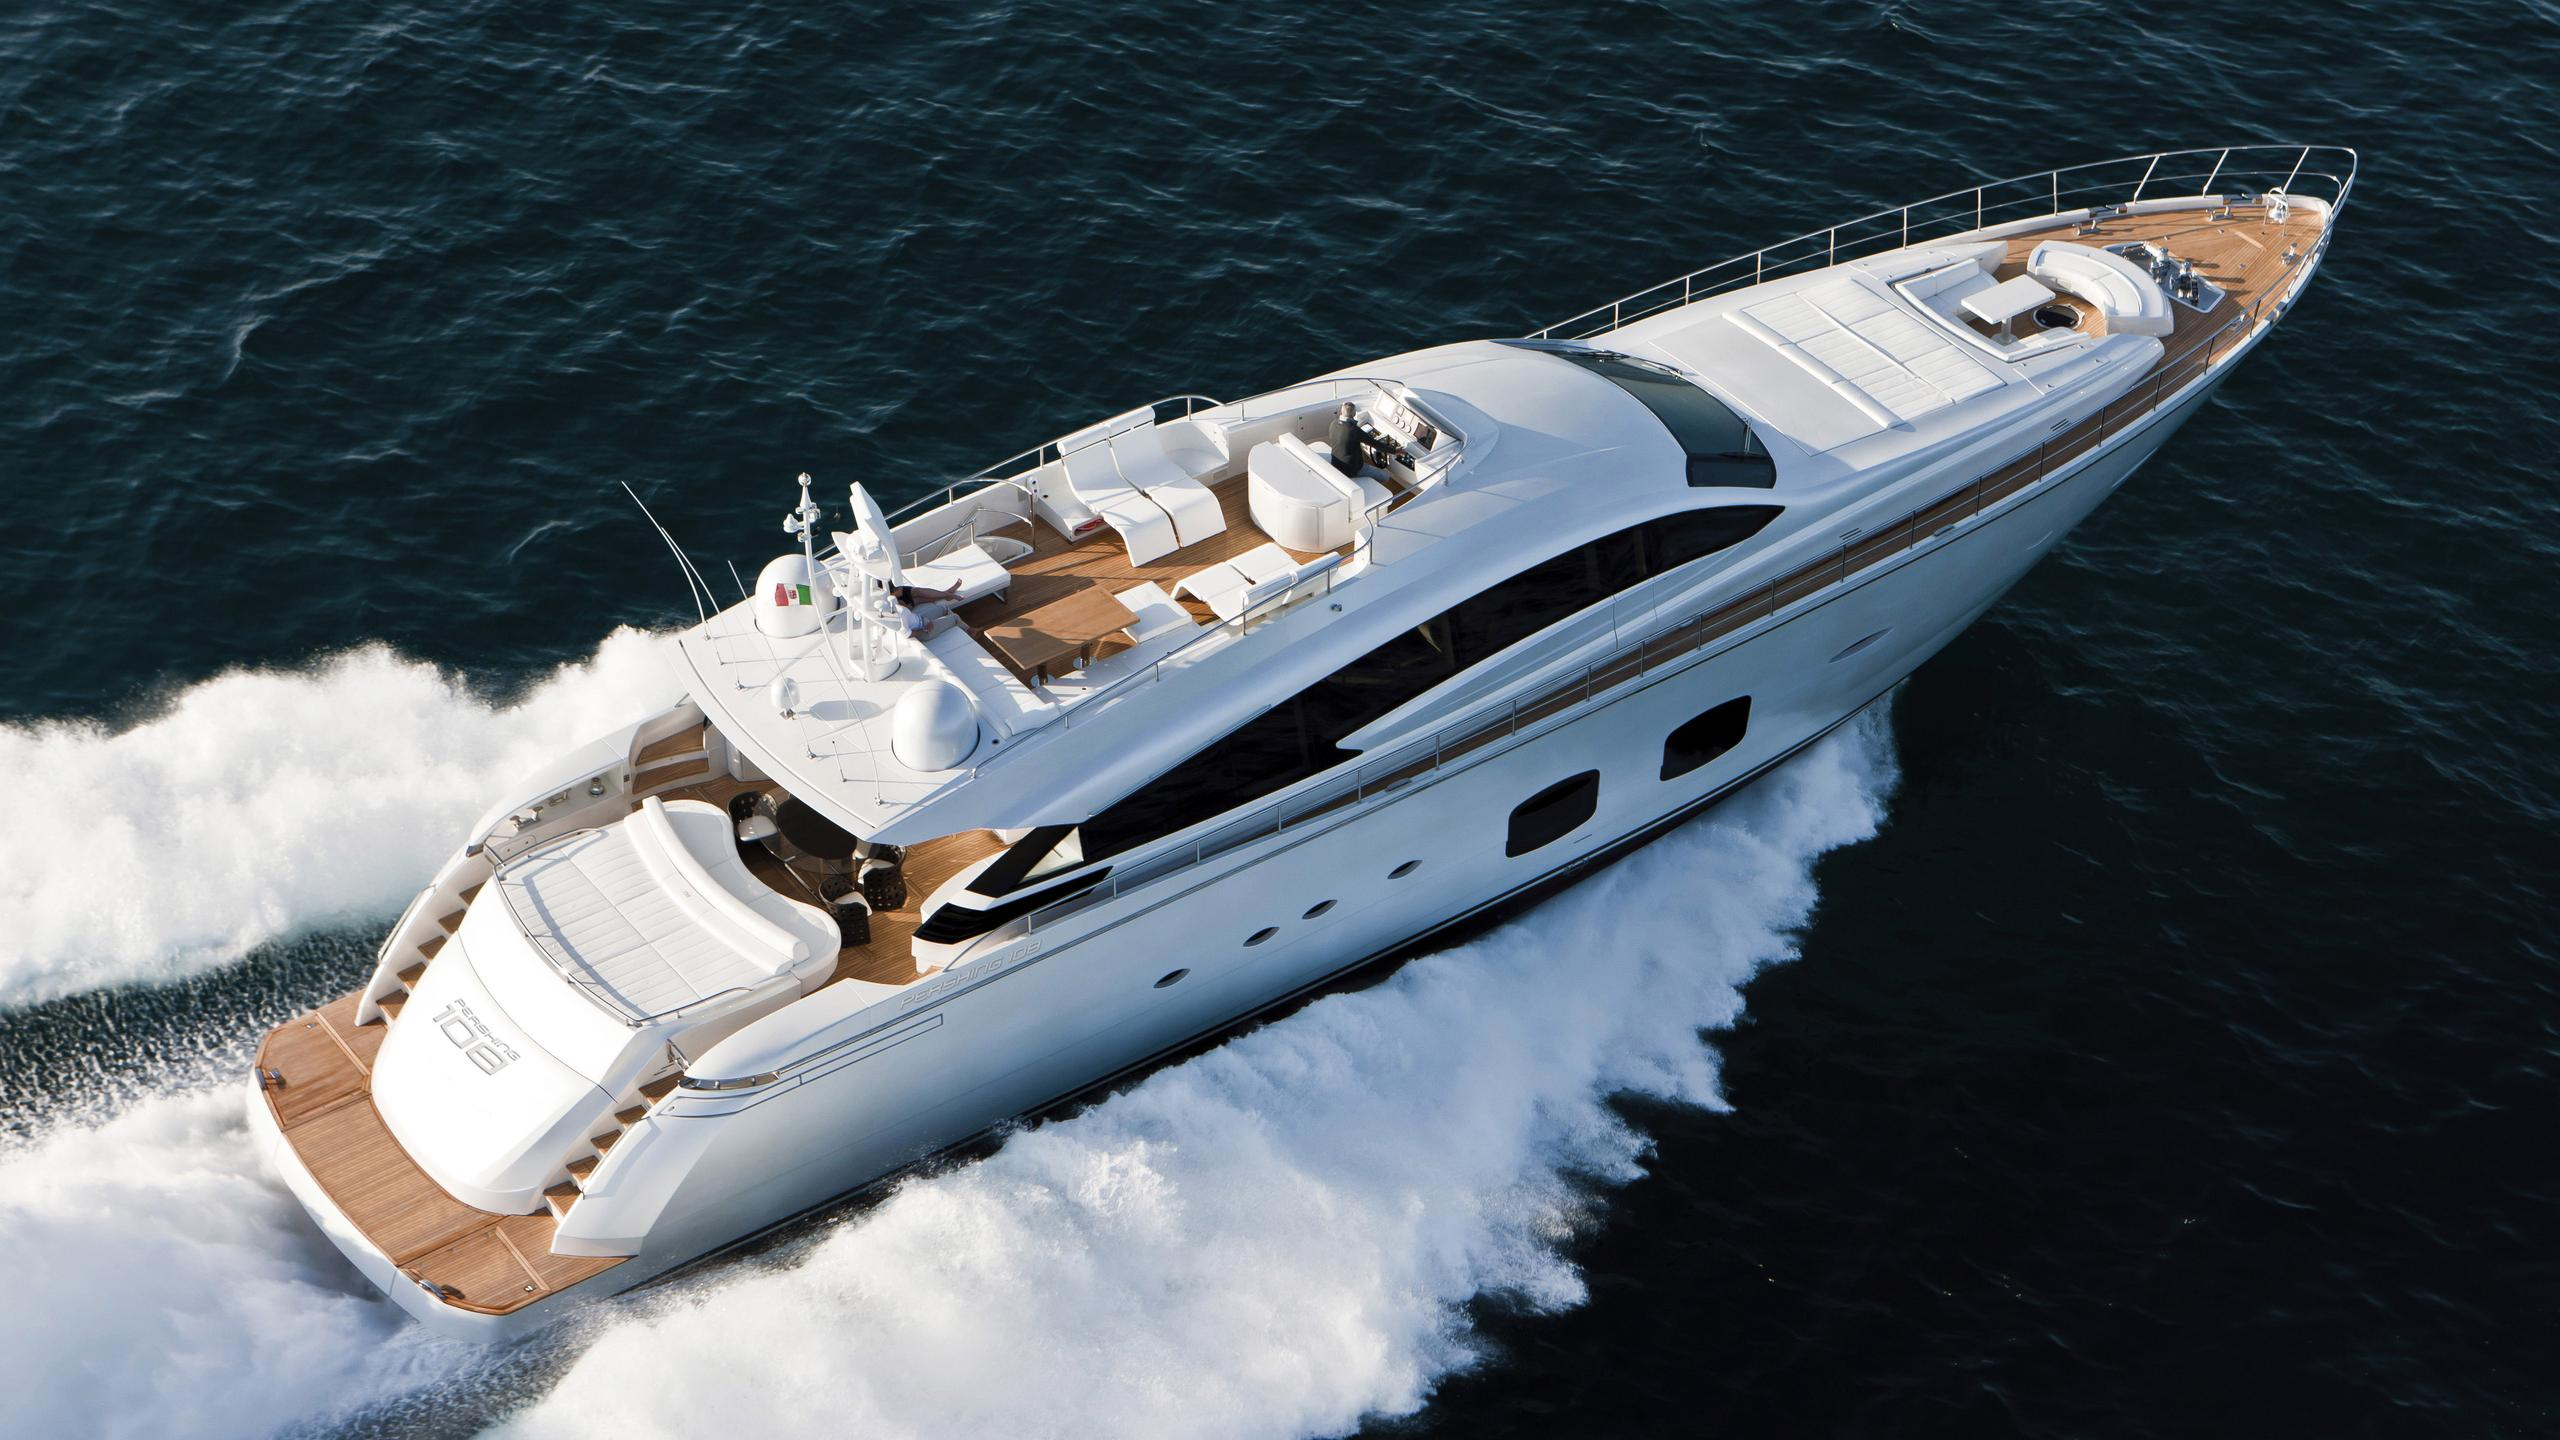 le-caprice-iv-motor-yacht-pershing-108-2011-33m-aerial